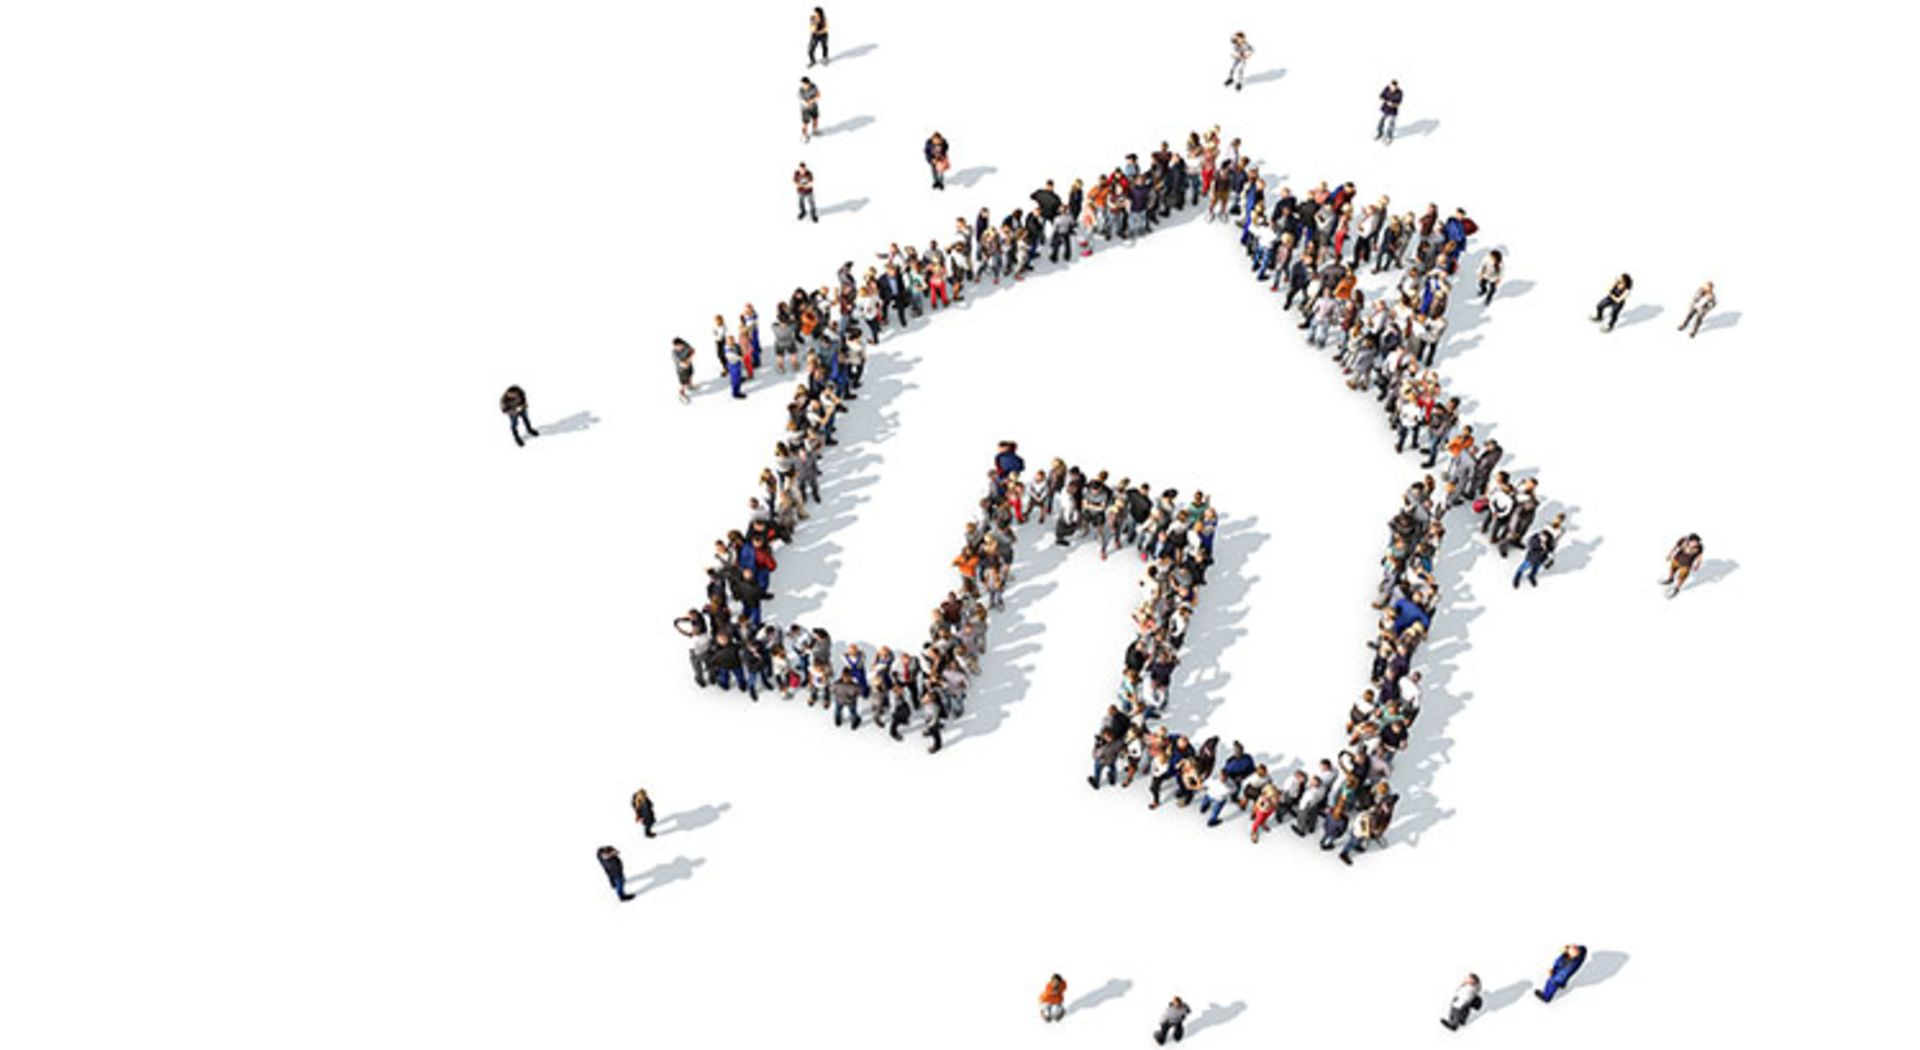 59 million expected to buy houses in 2017